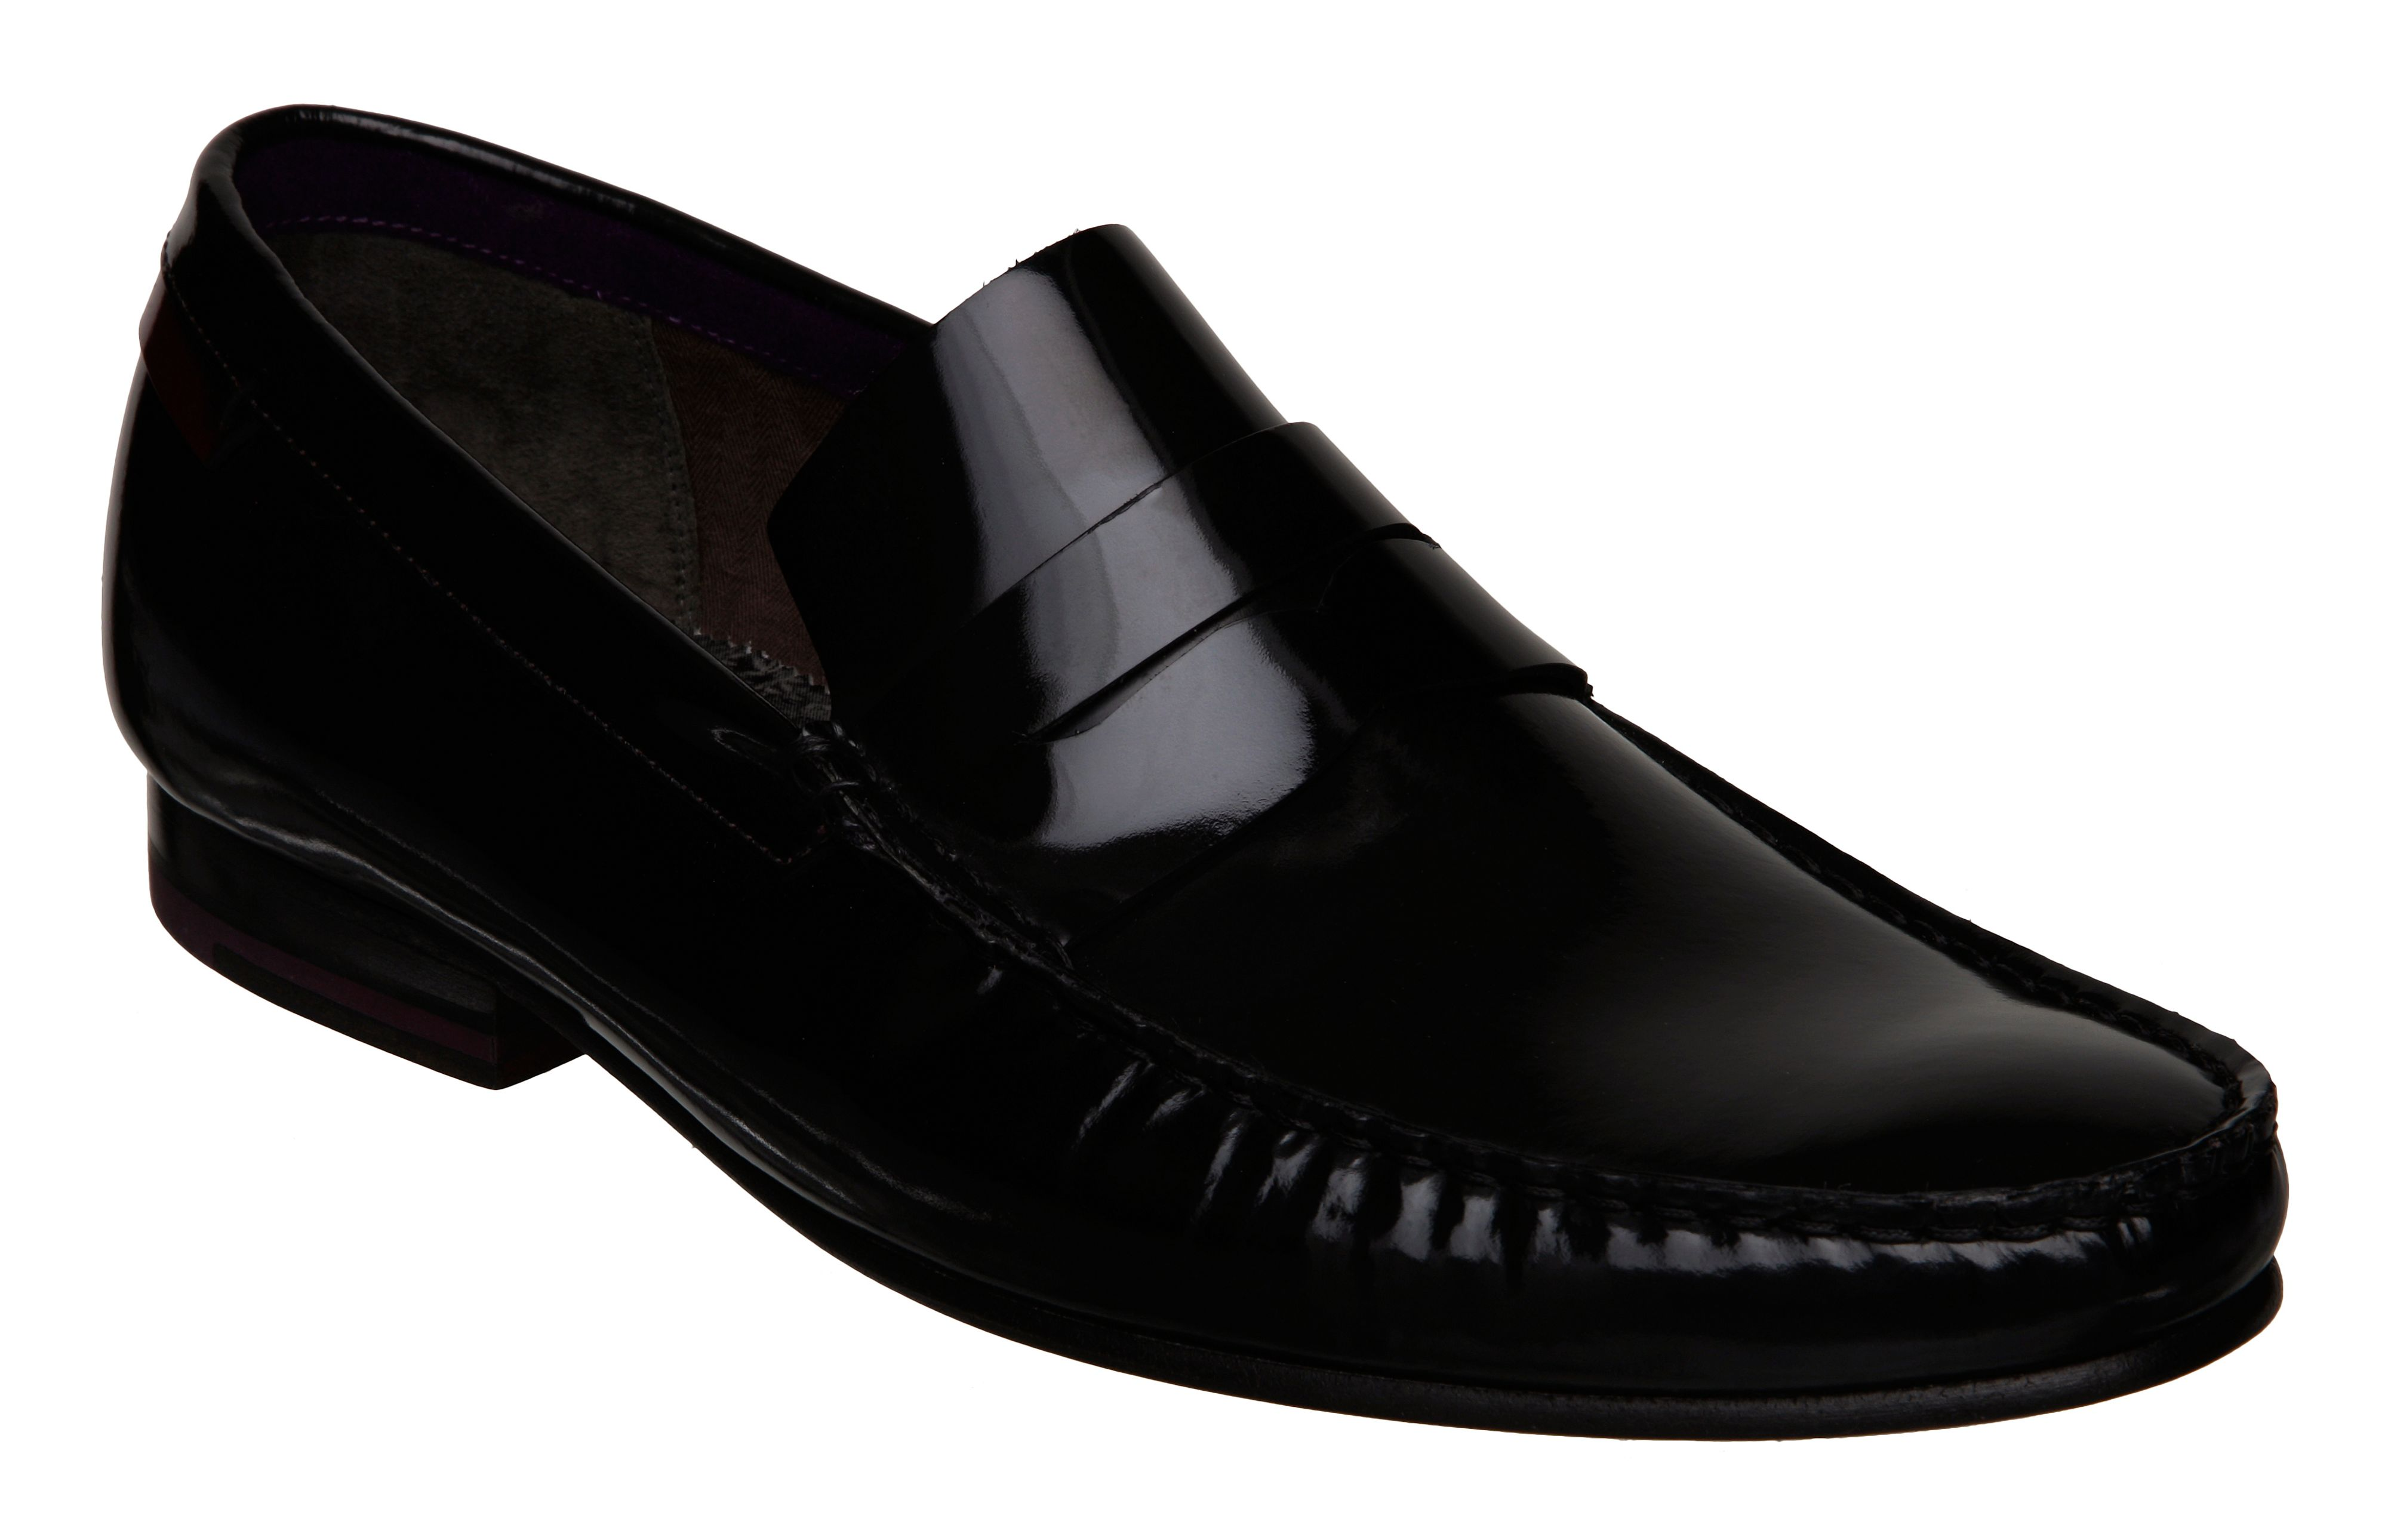 Ted Baker Vitric 2 Formal Shoes, Black